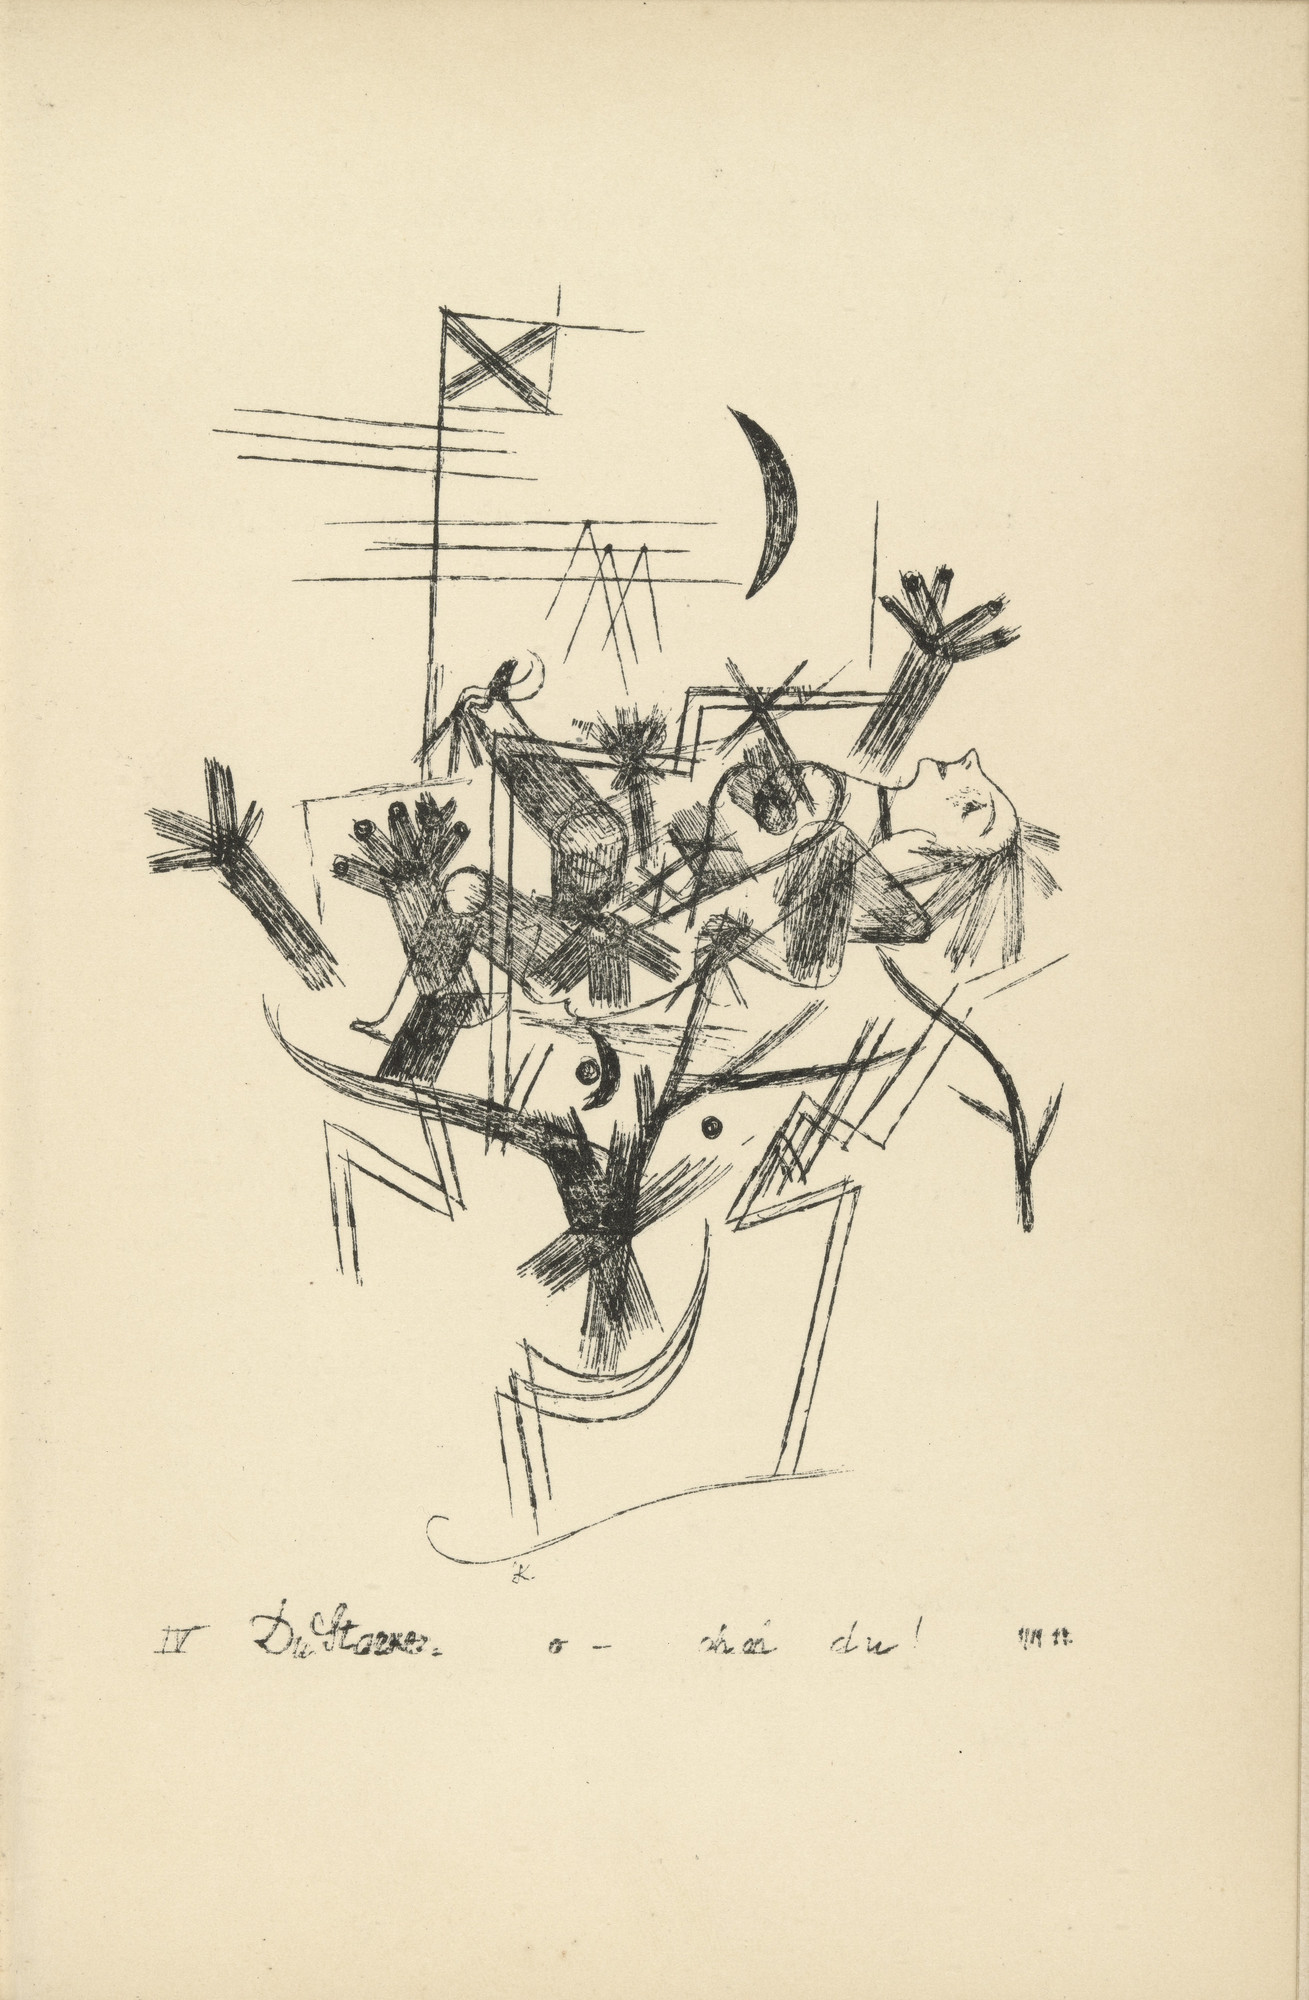 Paul Klee. You Strong One, O-Oh Oh You! (Du Starker - o - ohoh du!) from Potsdamer Platz oder Die Nächte des neuen Messias. Ekstatische Visionen (Potsdamer Platz or The Nights of the New Messiah. Ecstatic Visions). 1919